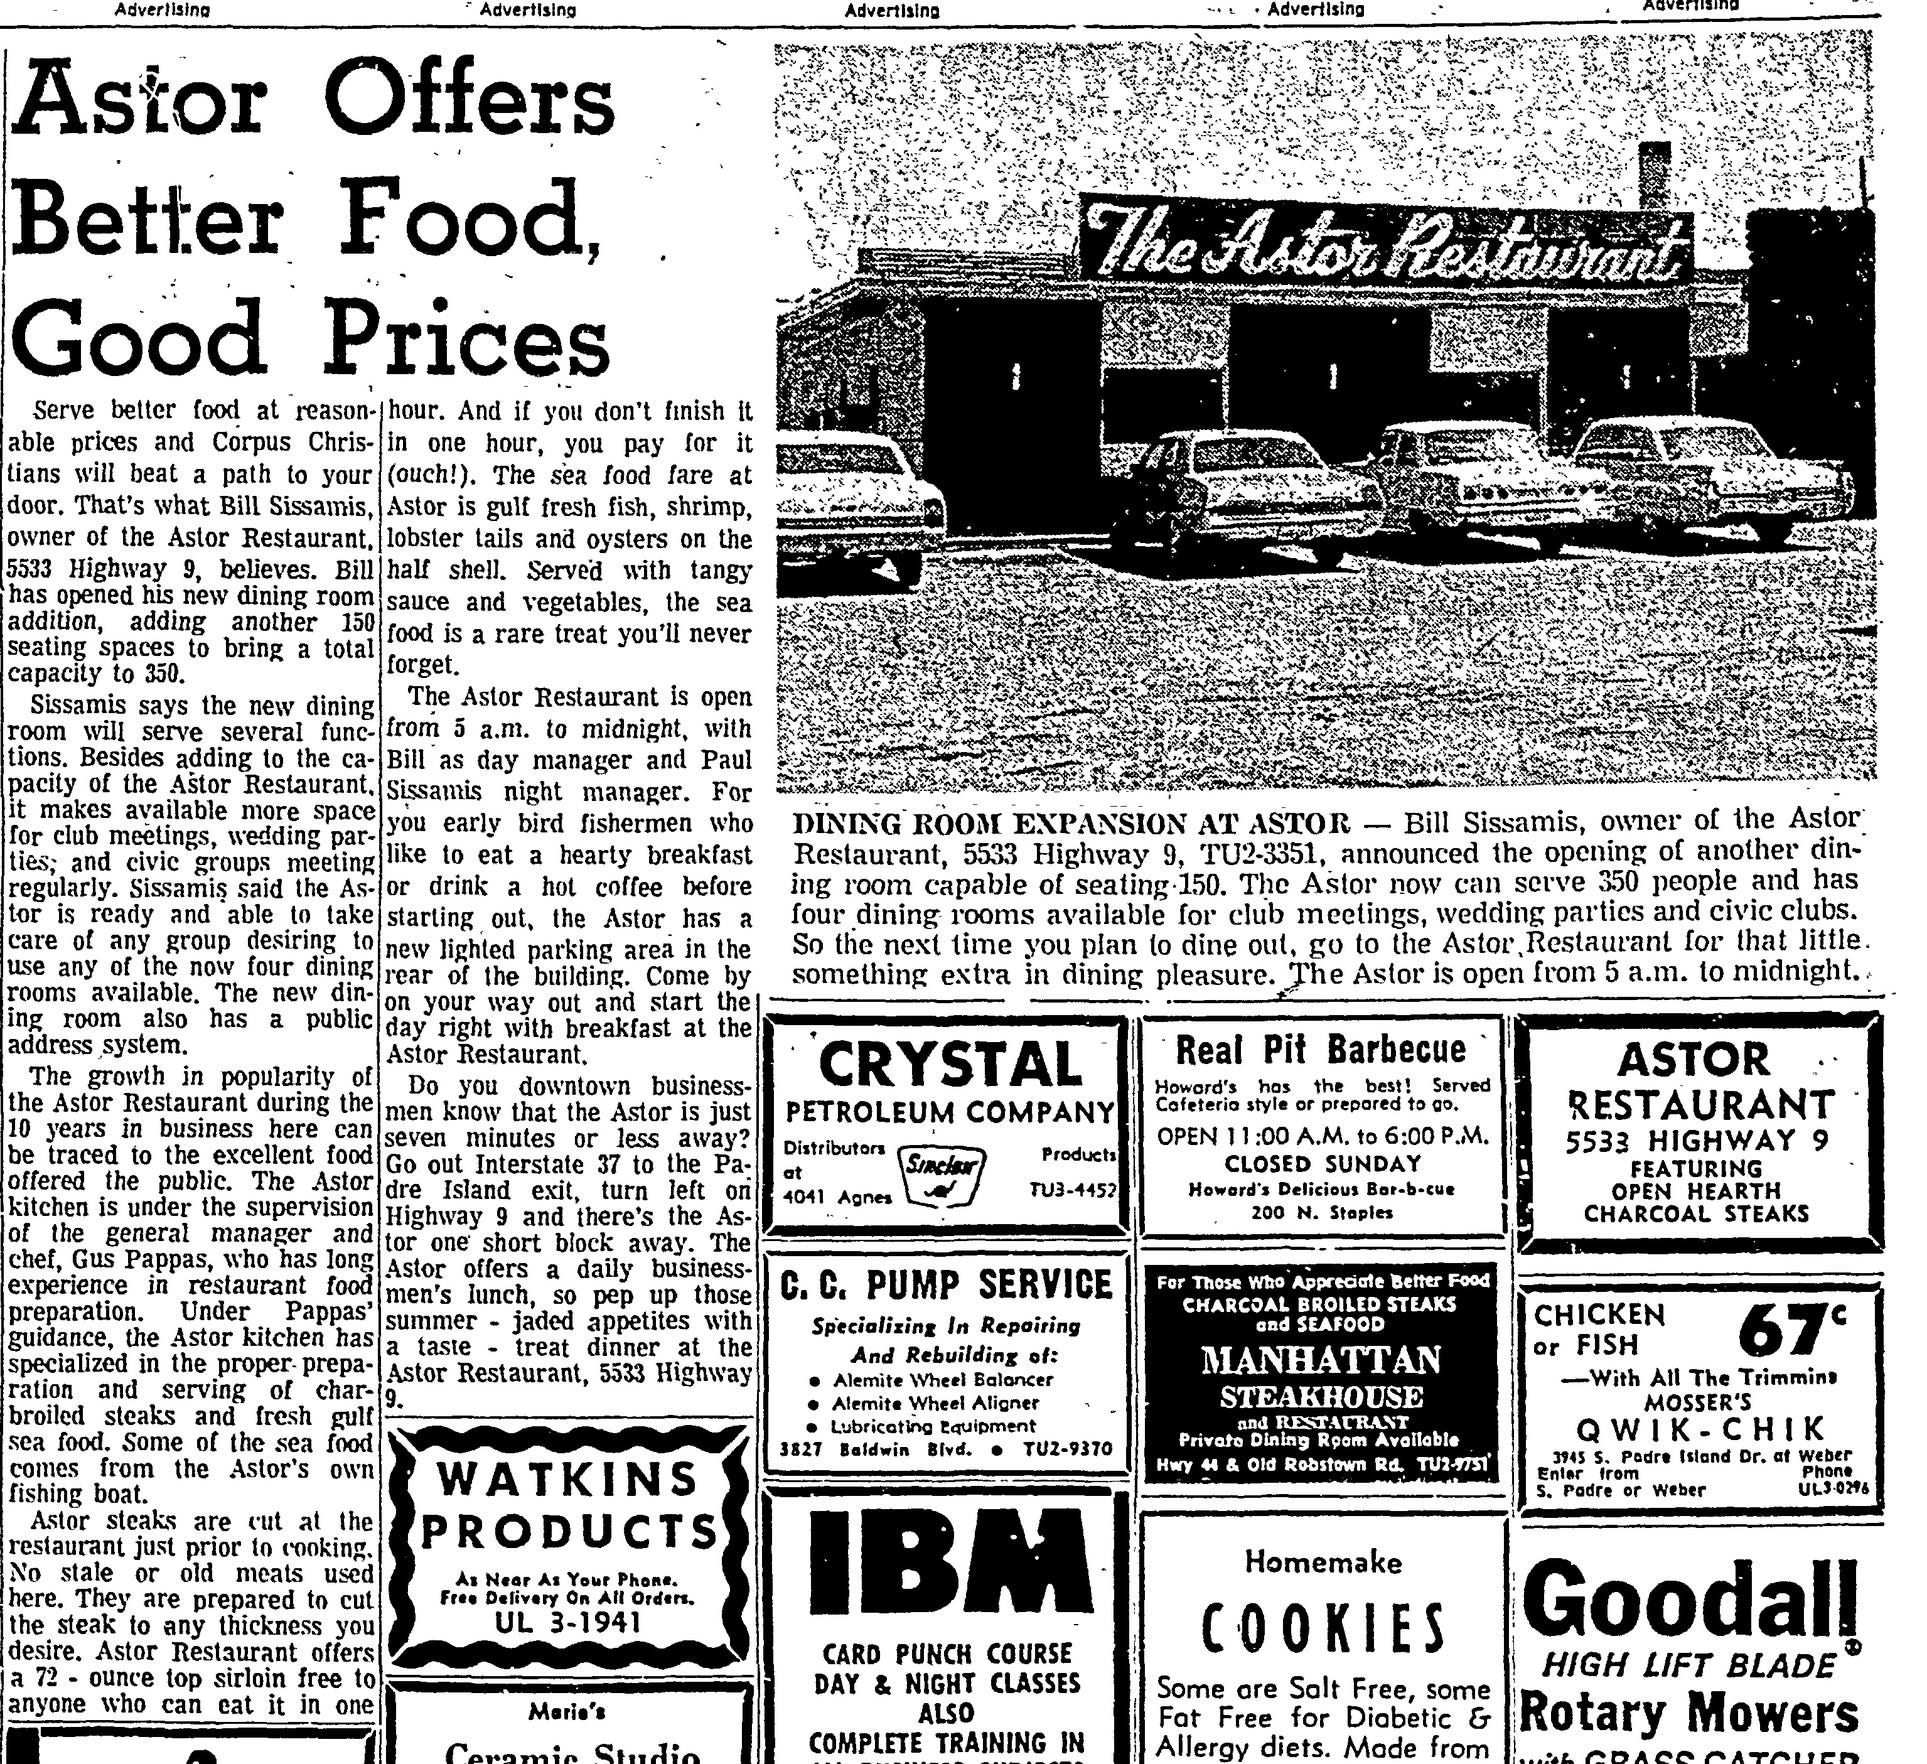 The Astor opened on Leopard Street, then Highway 9, in 1957 in Corpus Christi. This article from the June 26, 1967 Caller-Times noted their 10th anniversary.